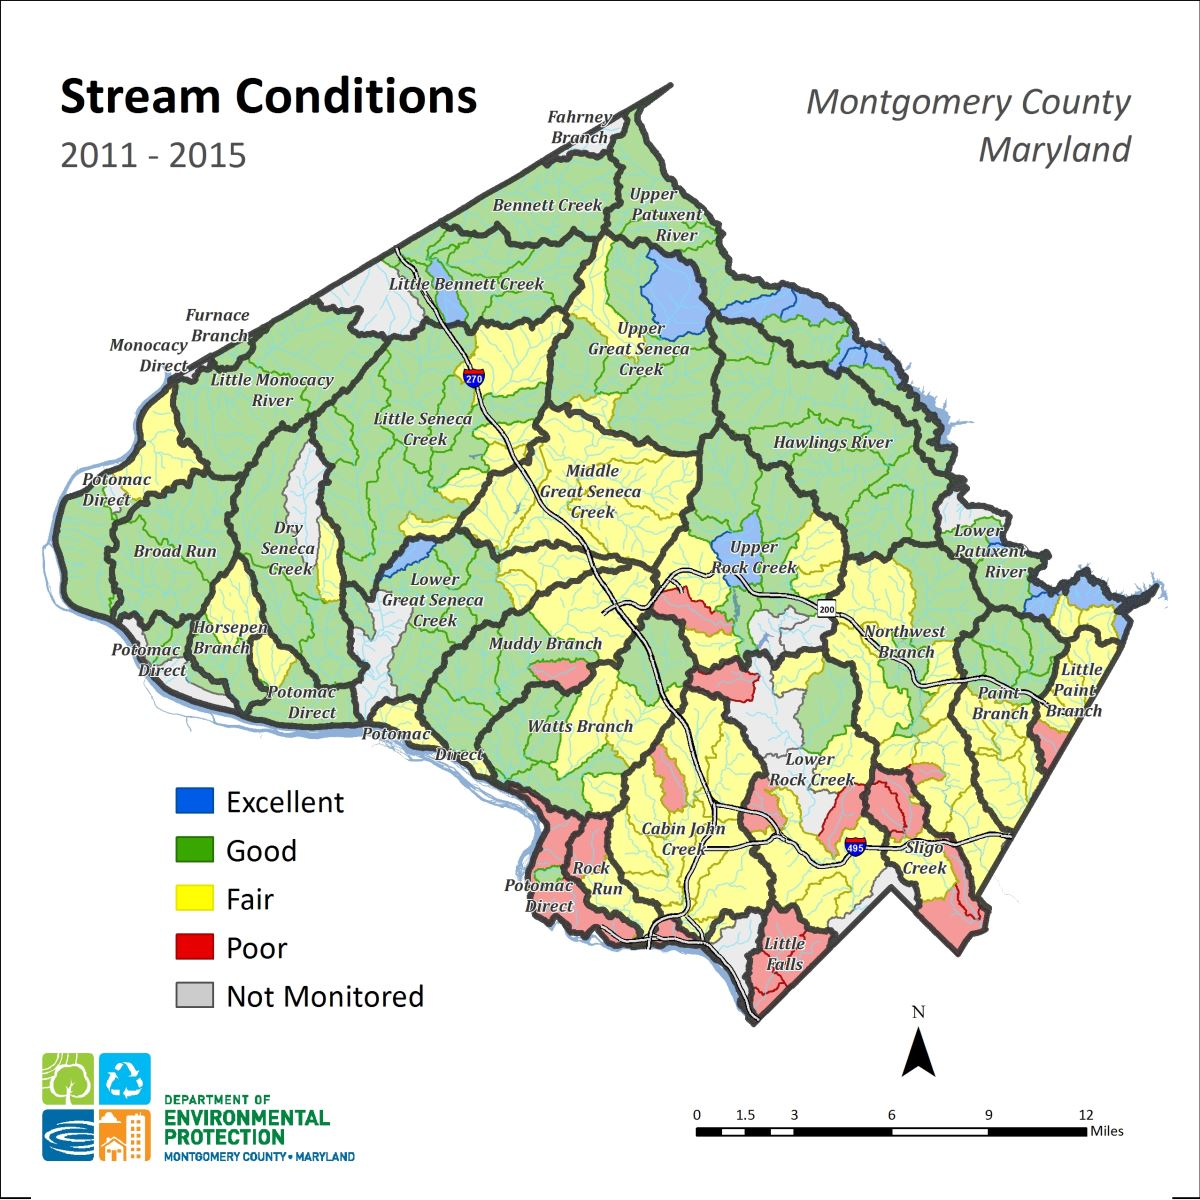 county watershed health department of environmental protection